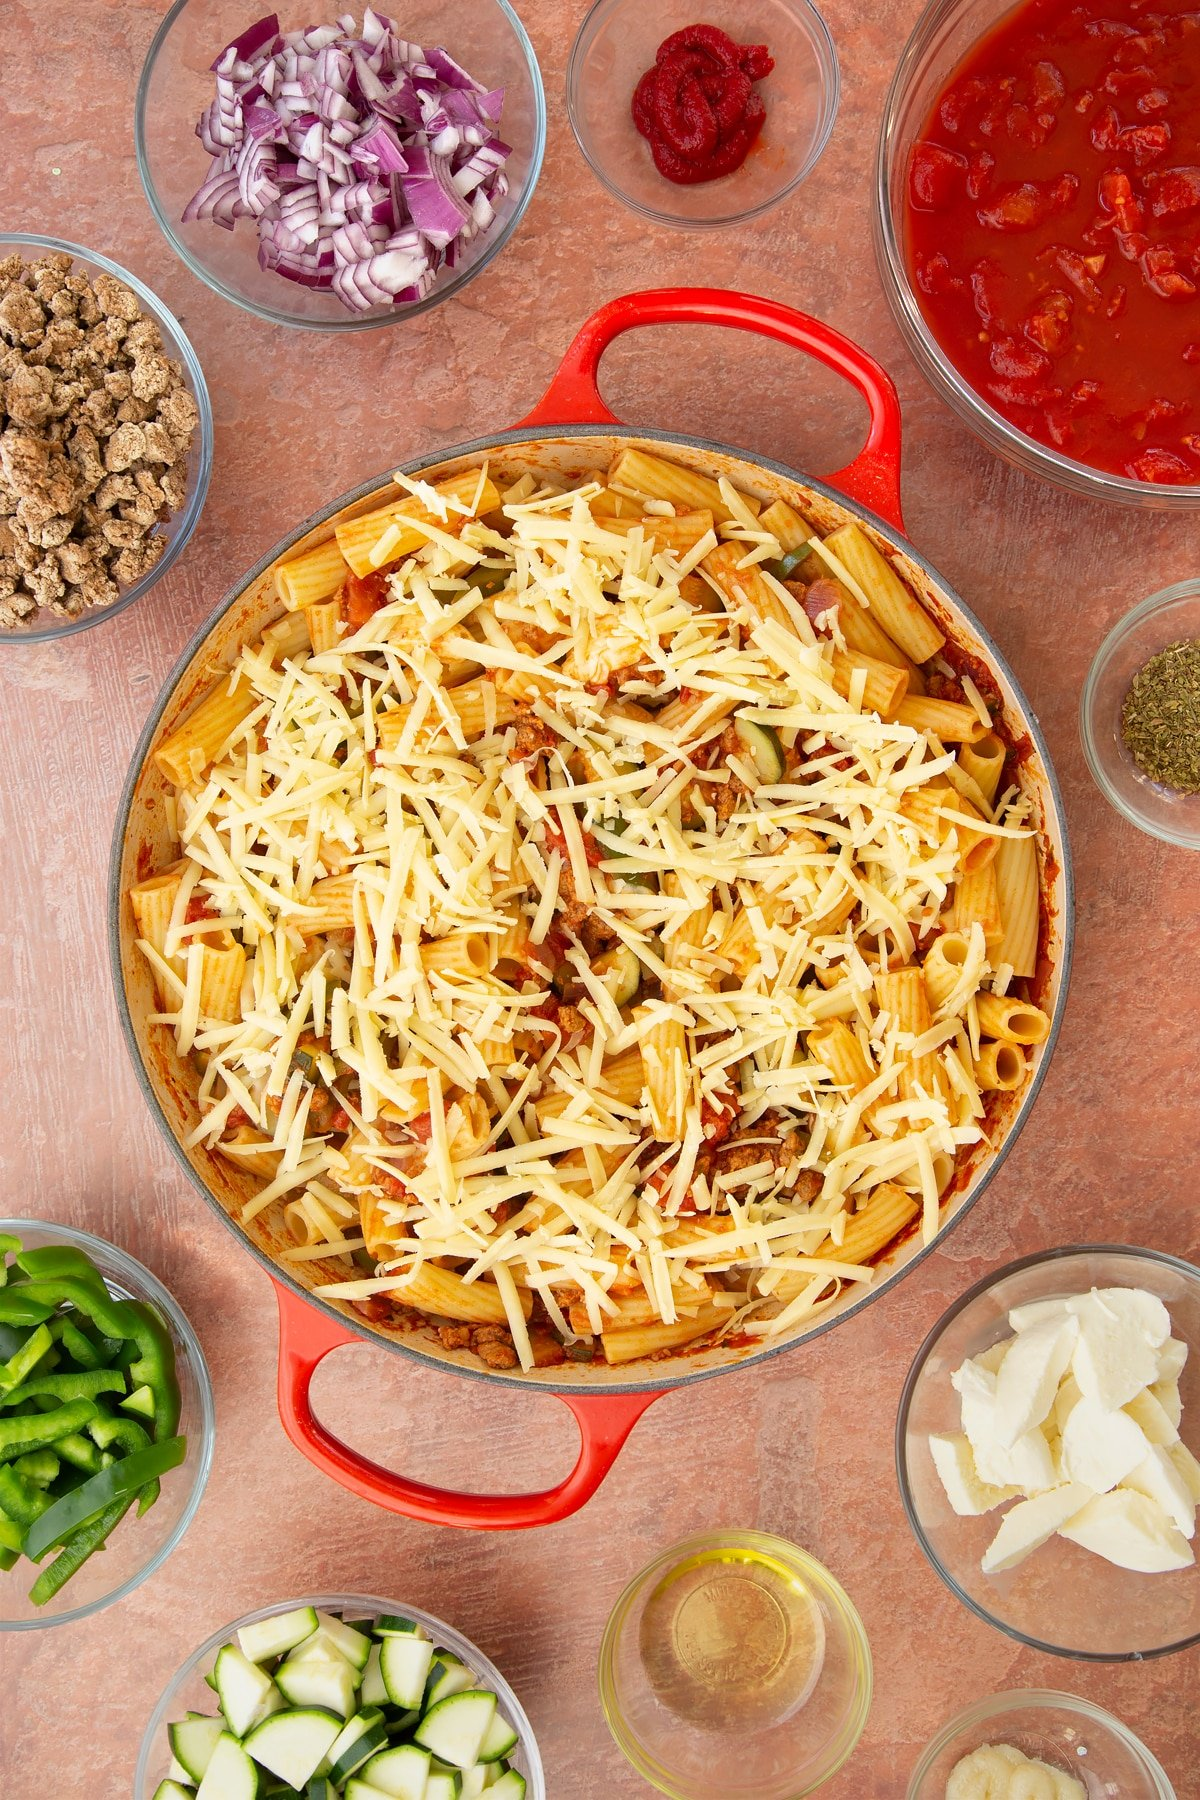 A casserole dish containing a bolognese sauce mixed with cooked pasta and torn mozzarella, topped with grated cheese. Ingredients to make bolognese al forno surround the dish.